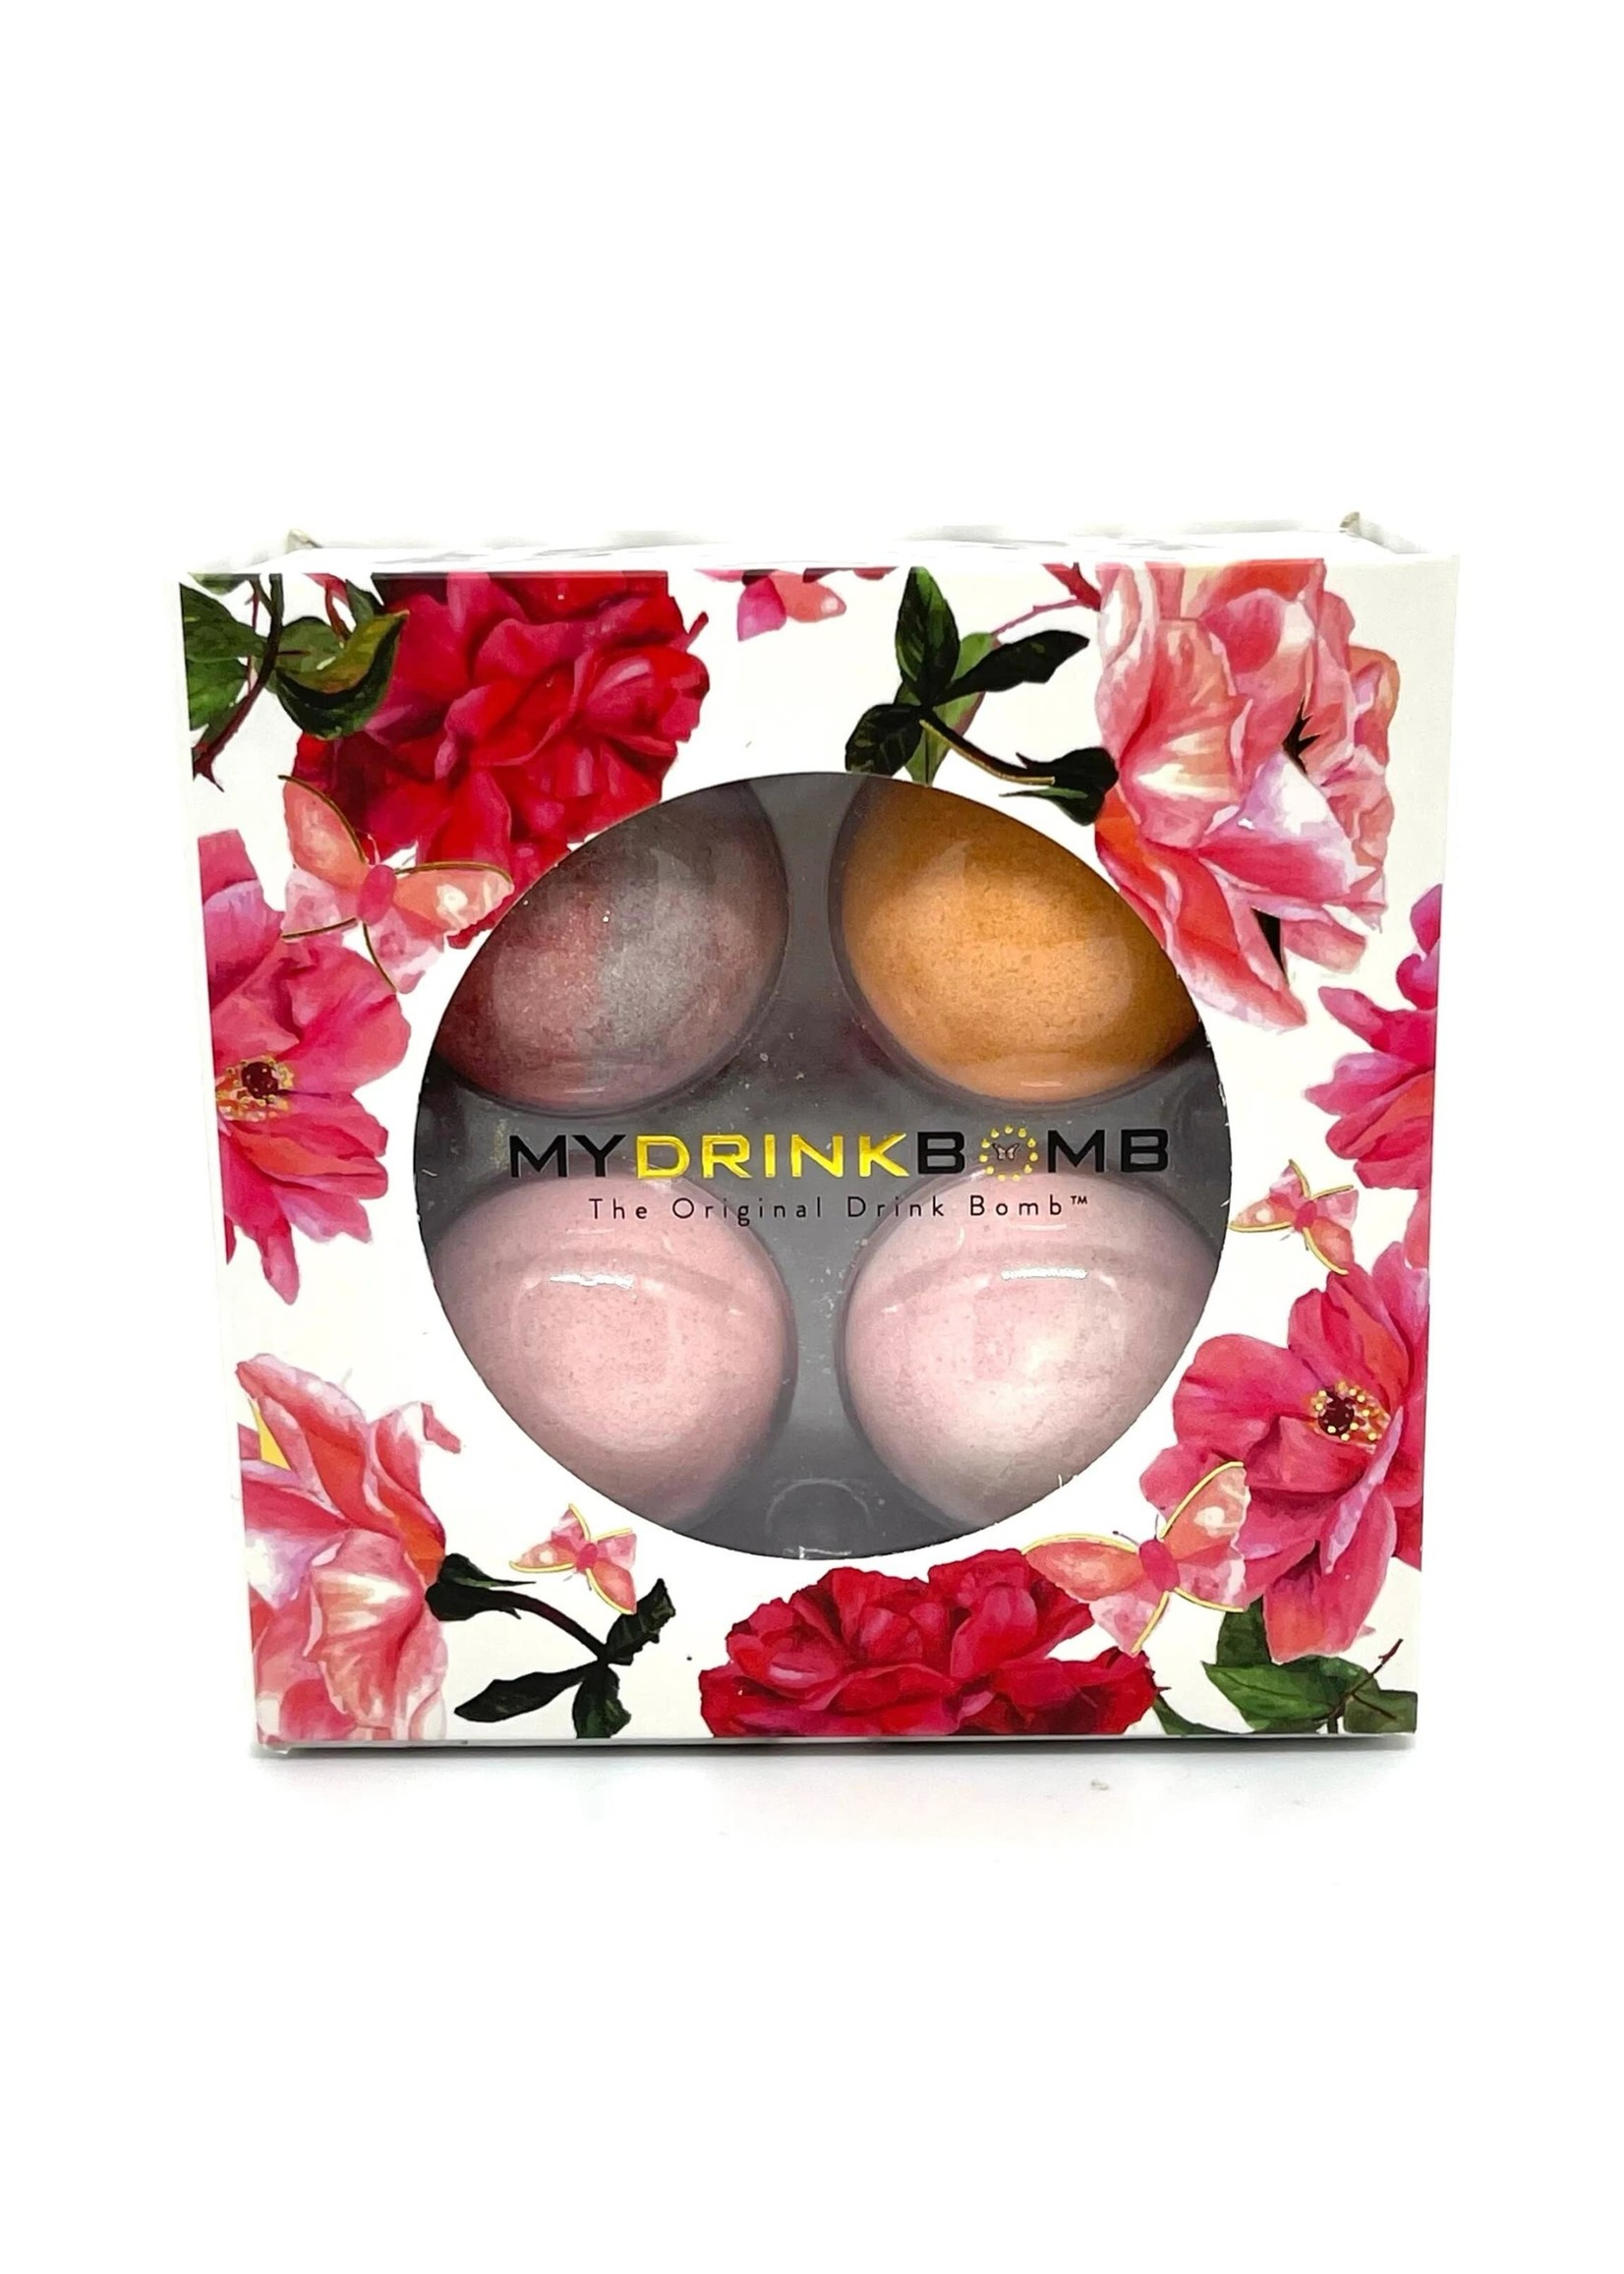 My Drink Bomb Romance Box #2 4 Pack Limited Edition Cocktail Drink Bomb Mix